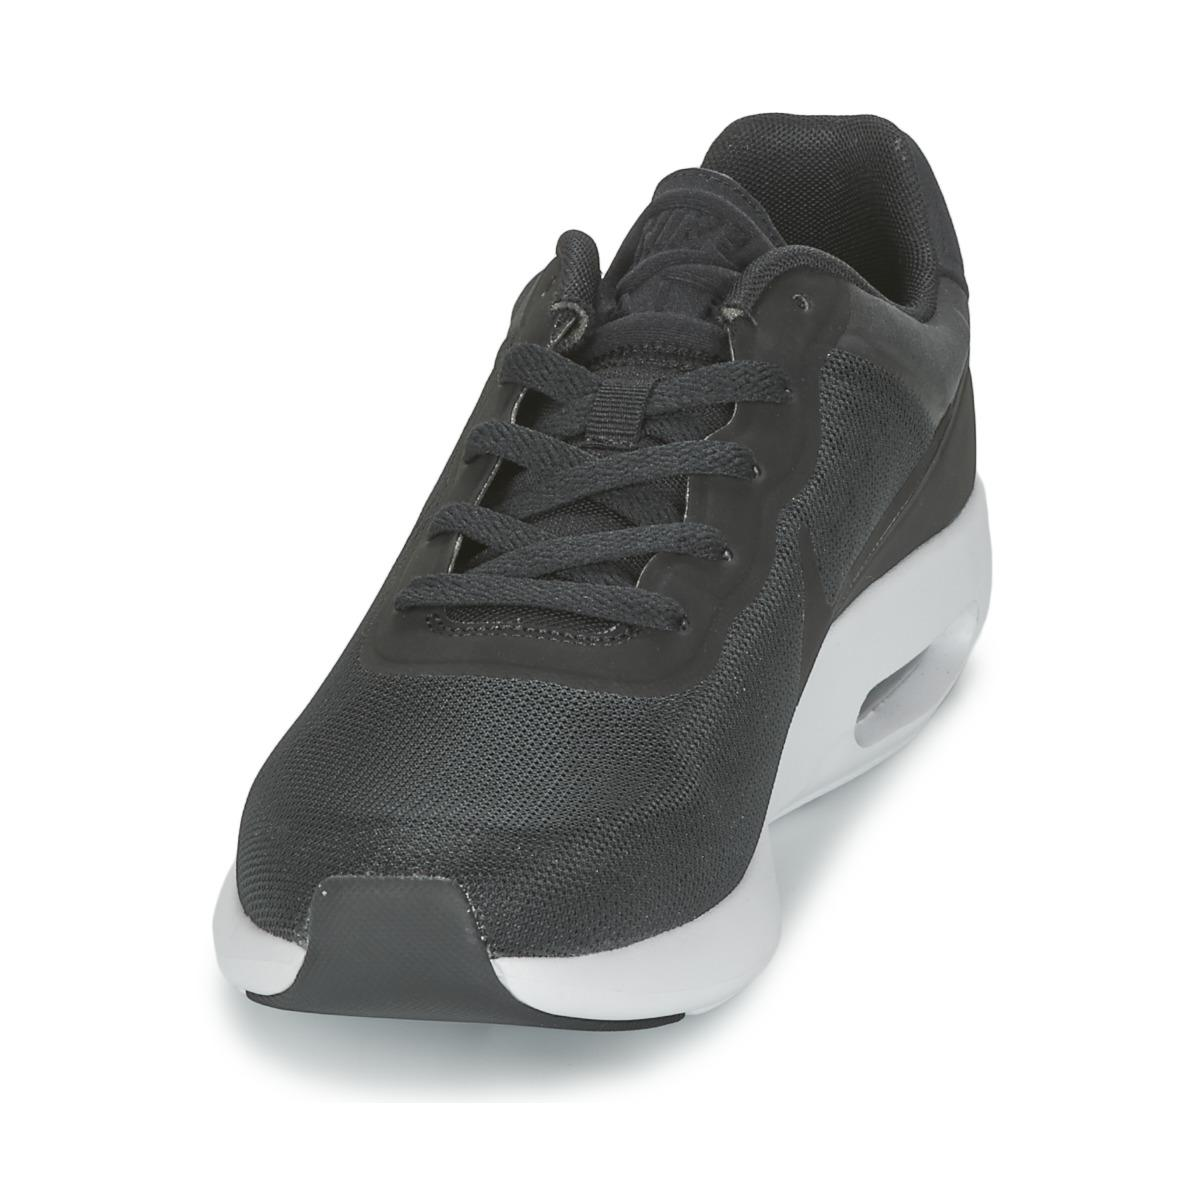 Nike Synthetic Air Max Modern Essential Shoes (trainers) in Black for Men